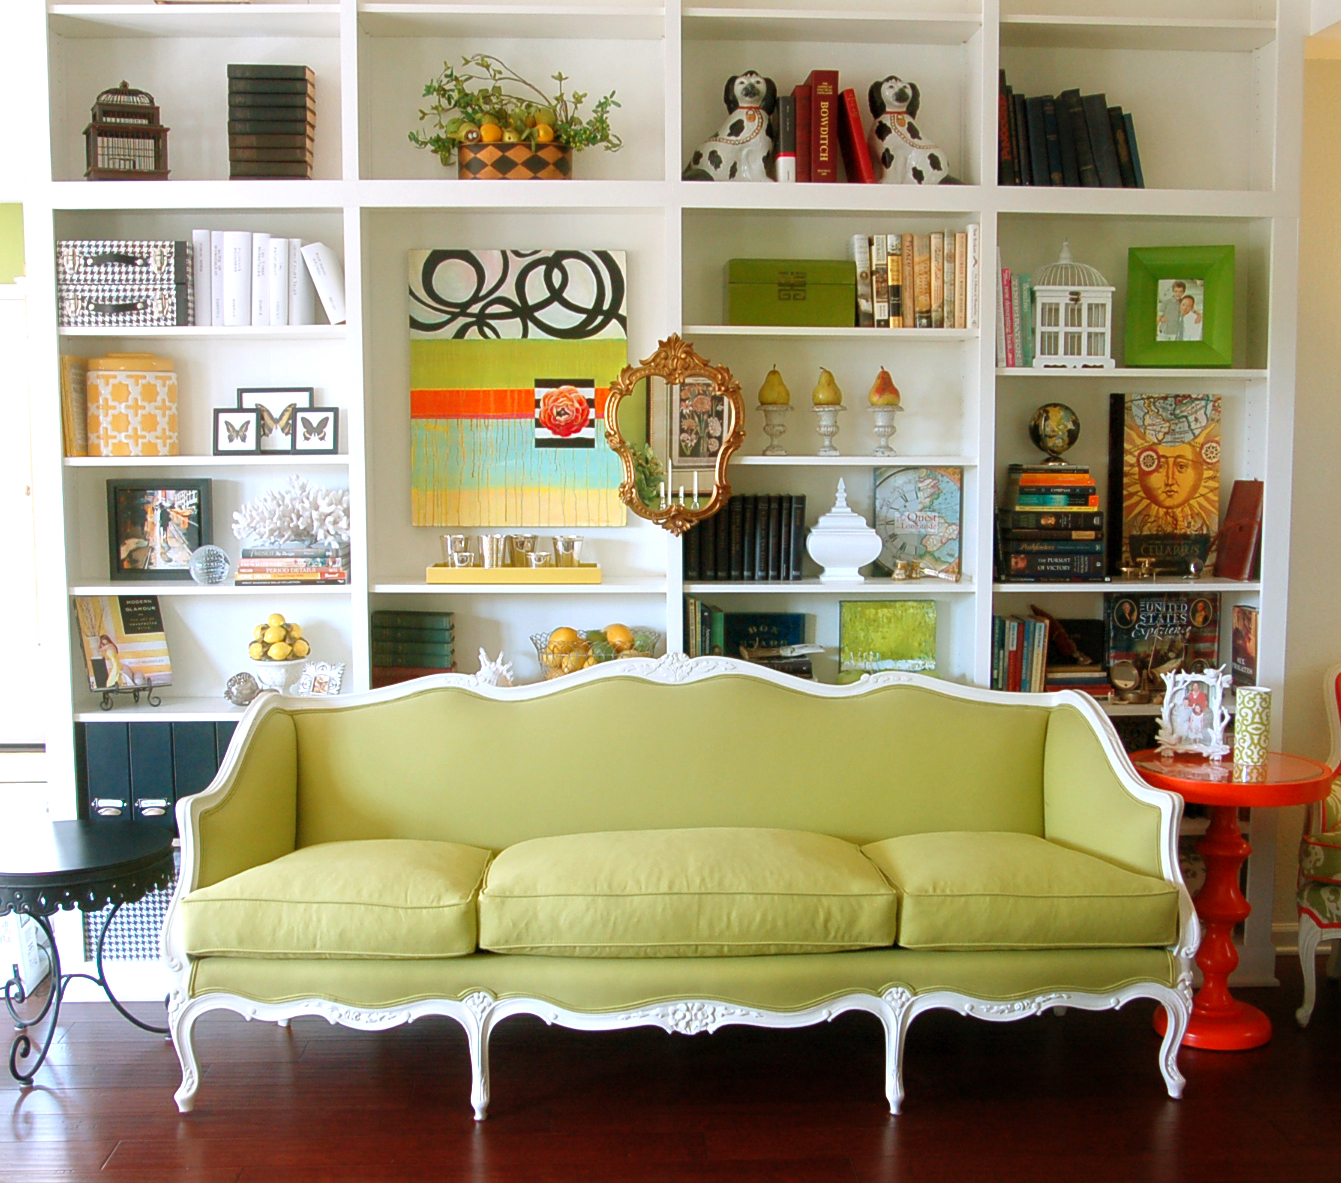 Living Room With Bookshelf: Show + Tell: LIVING ROOM IS LIVABLE